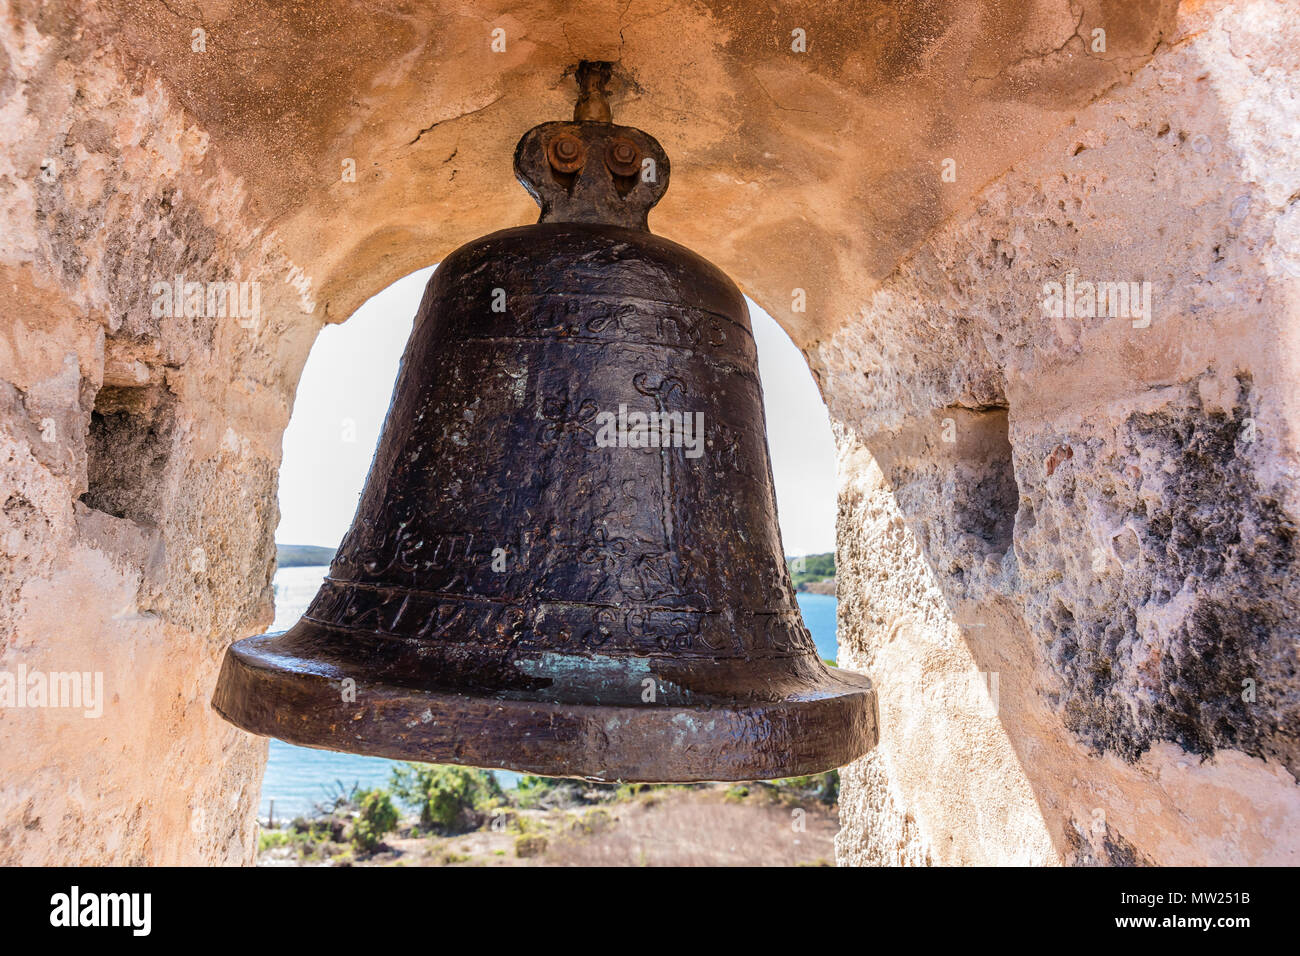 The alarm bell at the Castillo de Jagua fort, erected in 1742 by King Philip V of Spain, near Cienfuegos, Cuba. Stock Photo